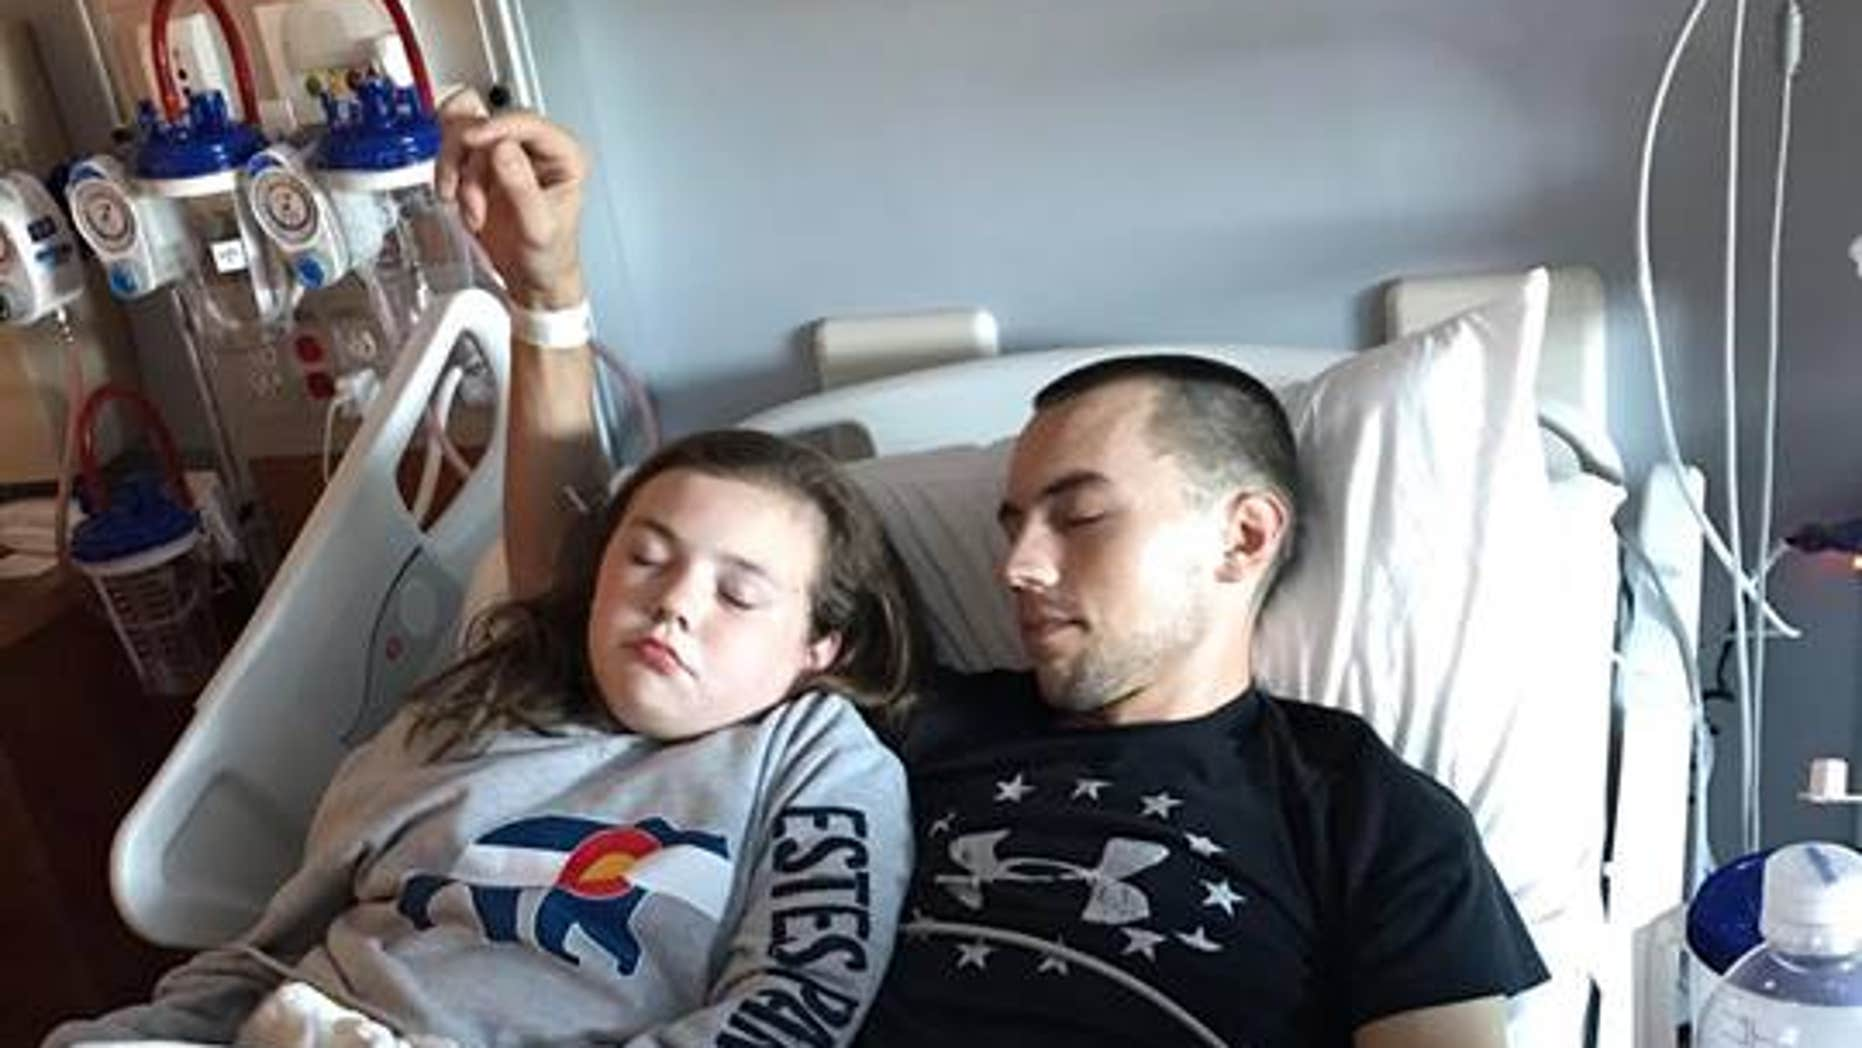 Grace rests next to her father, Jeff, as he recovers in the hospital.